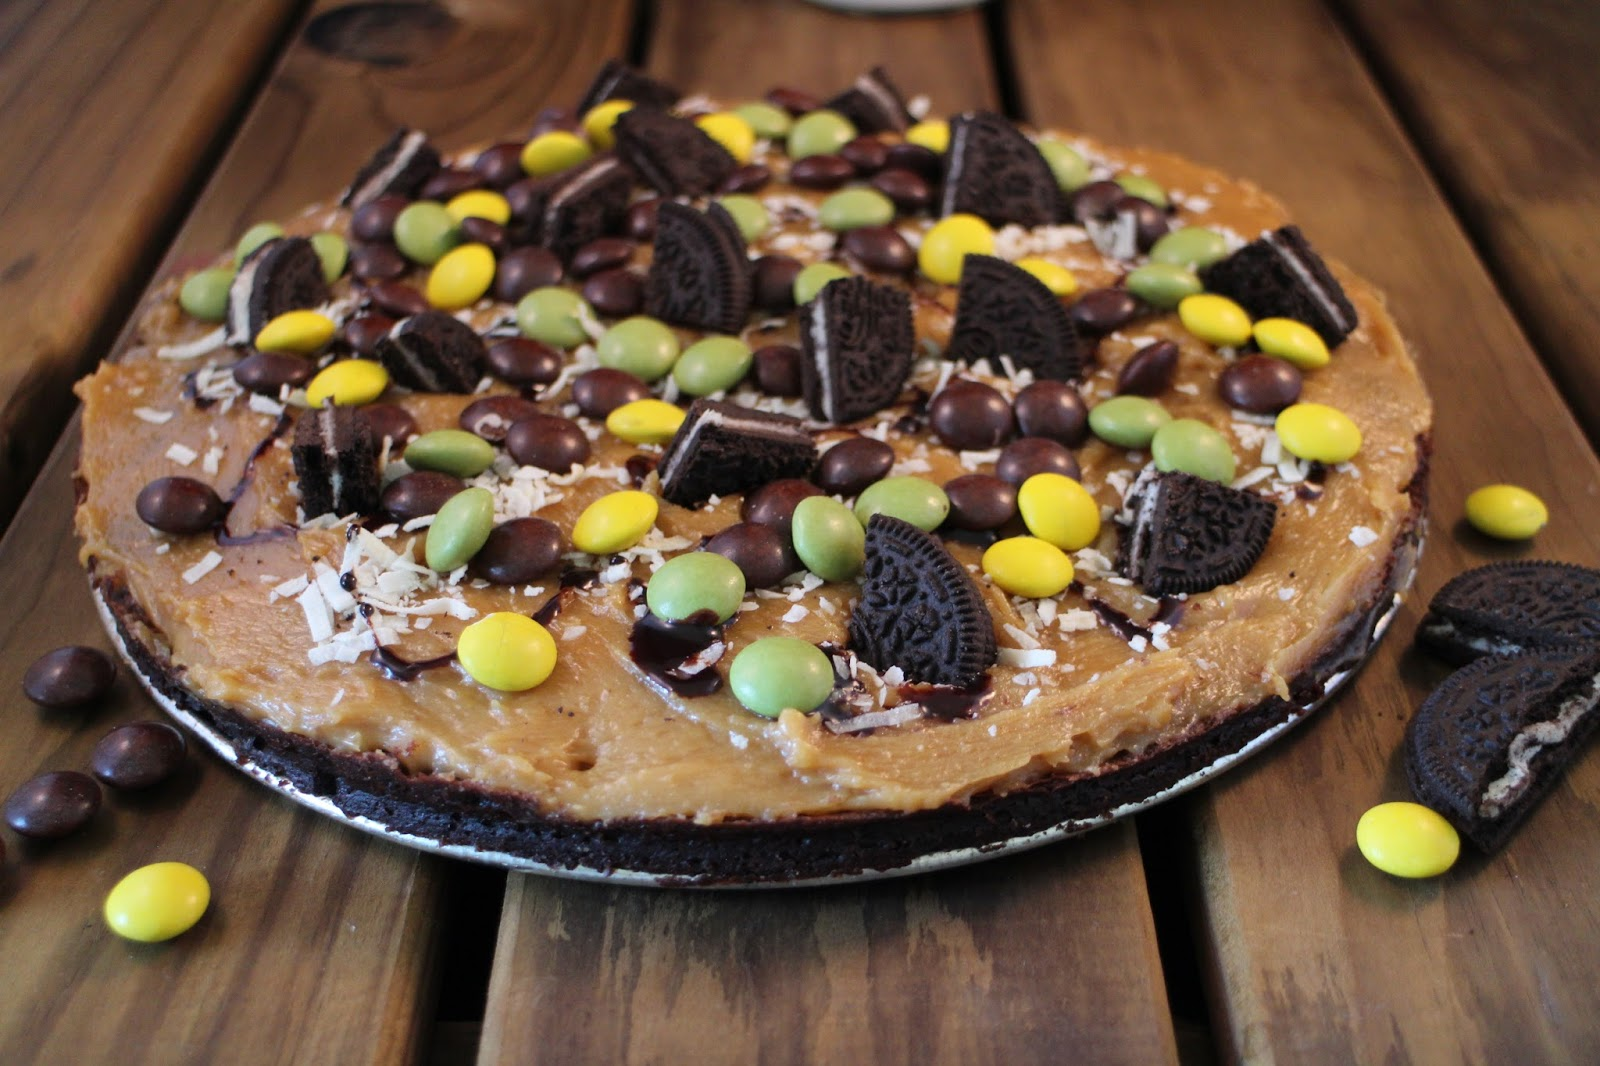 peanut-butter-brownie-pizza, pizza-dulce, brownie-pizza